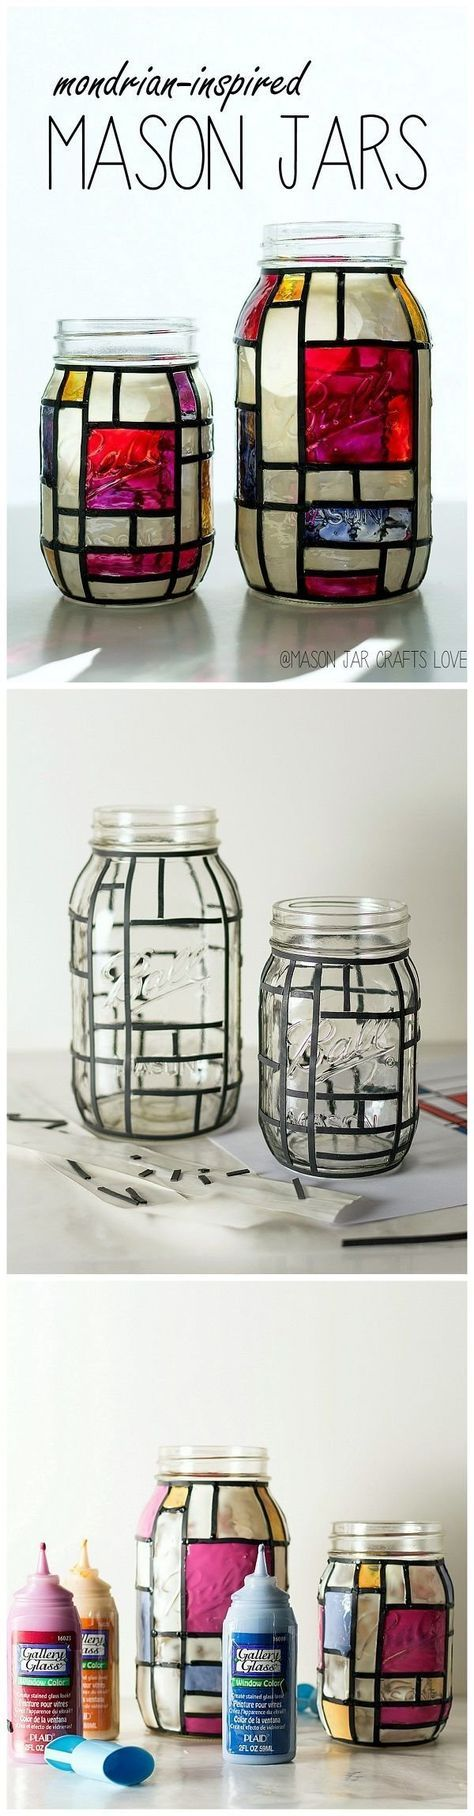 15 Awesome DIY Projects That You Can Make and Sell | Mondrian, Jar ...